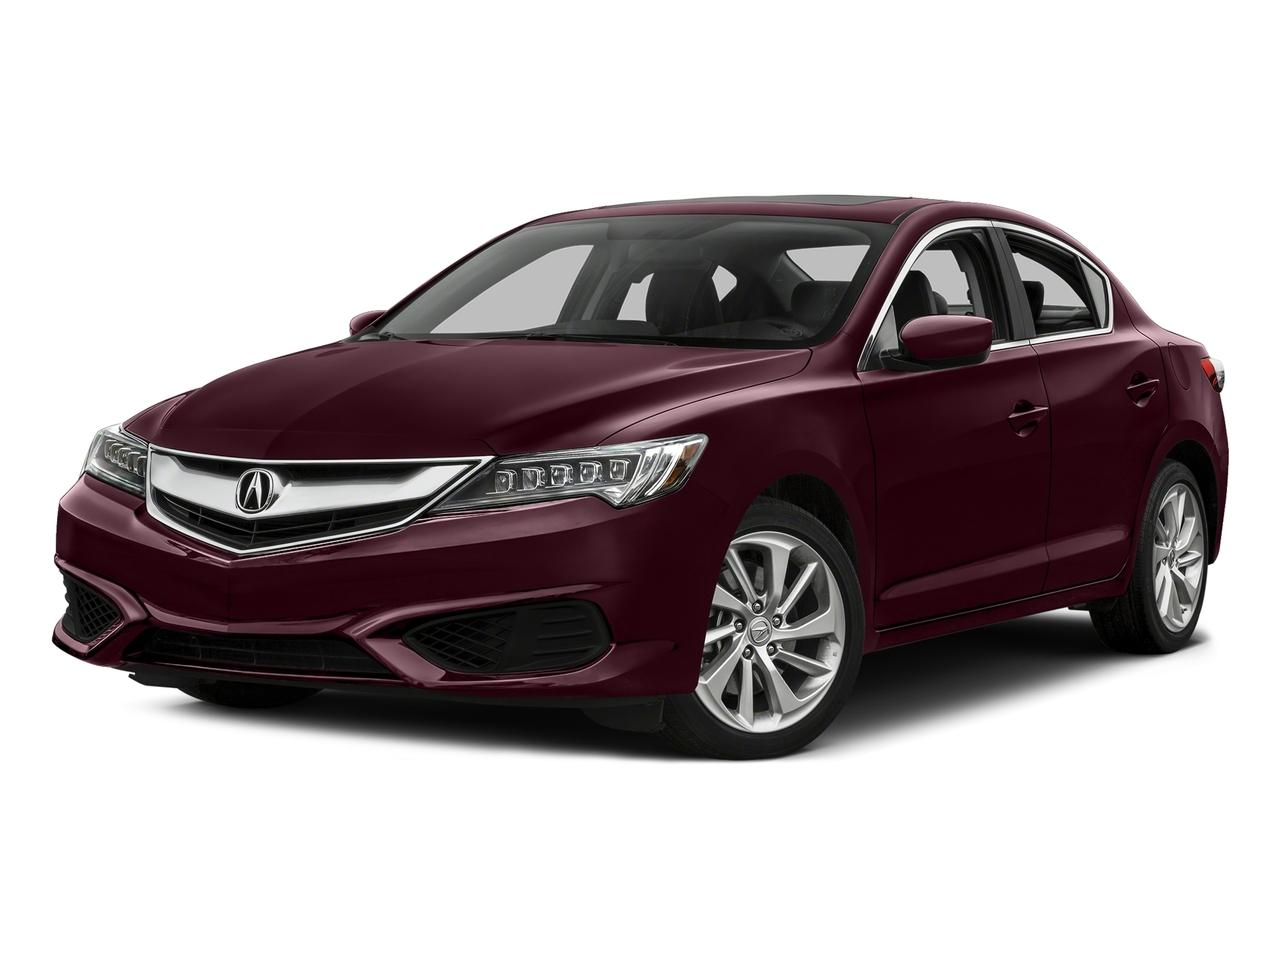 2016 Acura ILX Vehicle Photo in Fort Worth, TX 76116